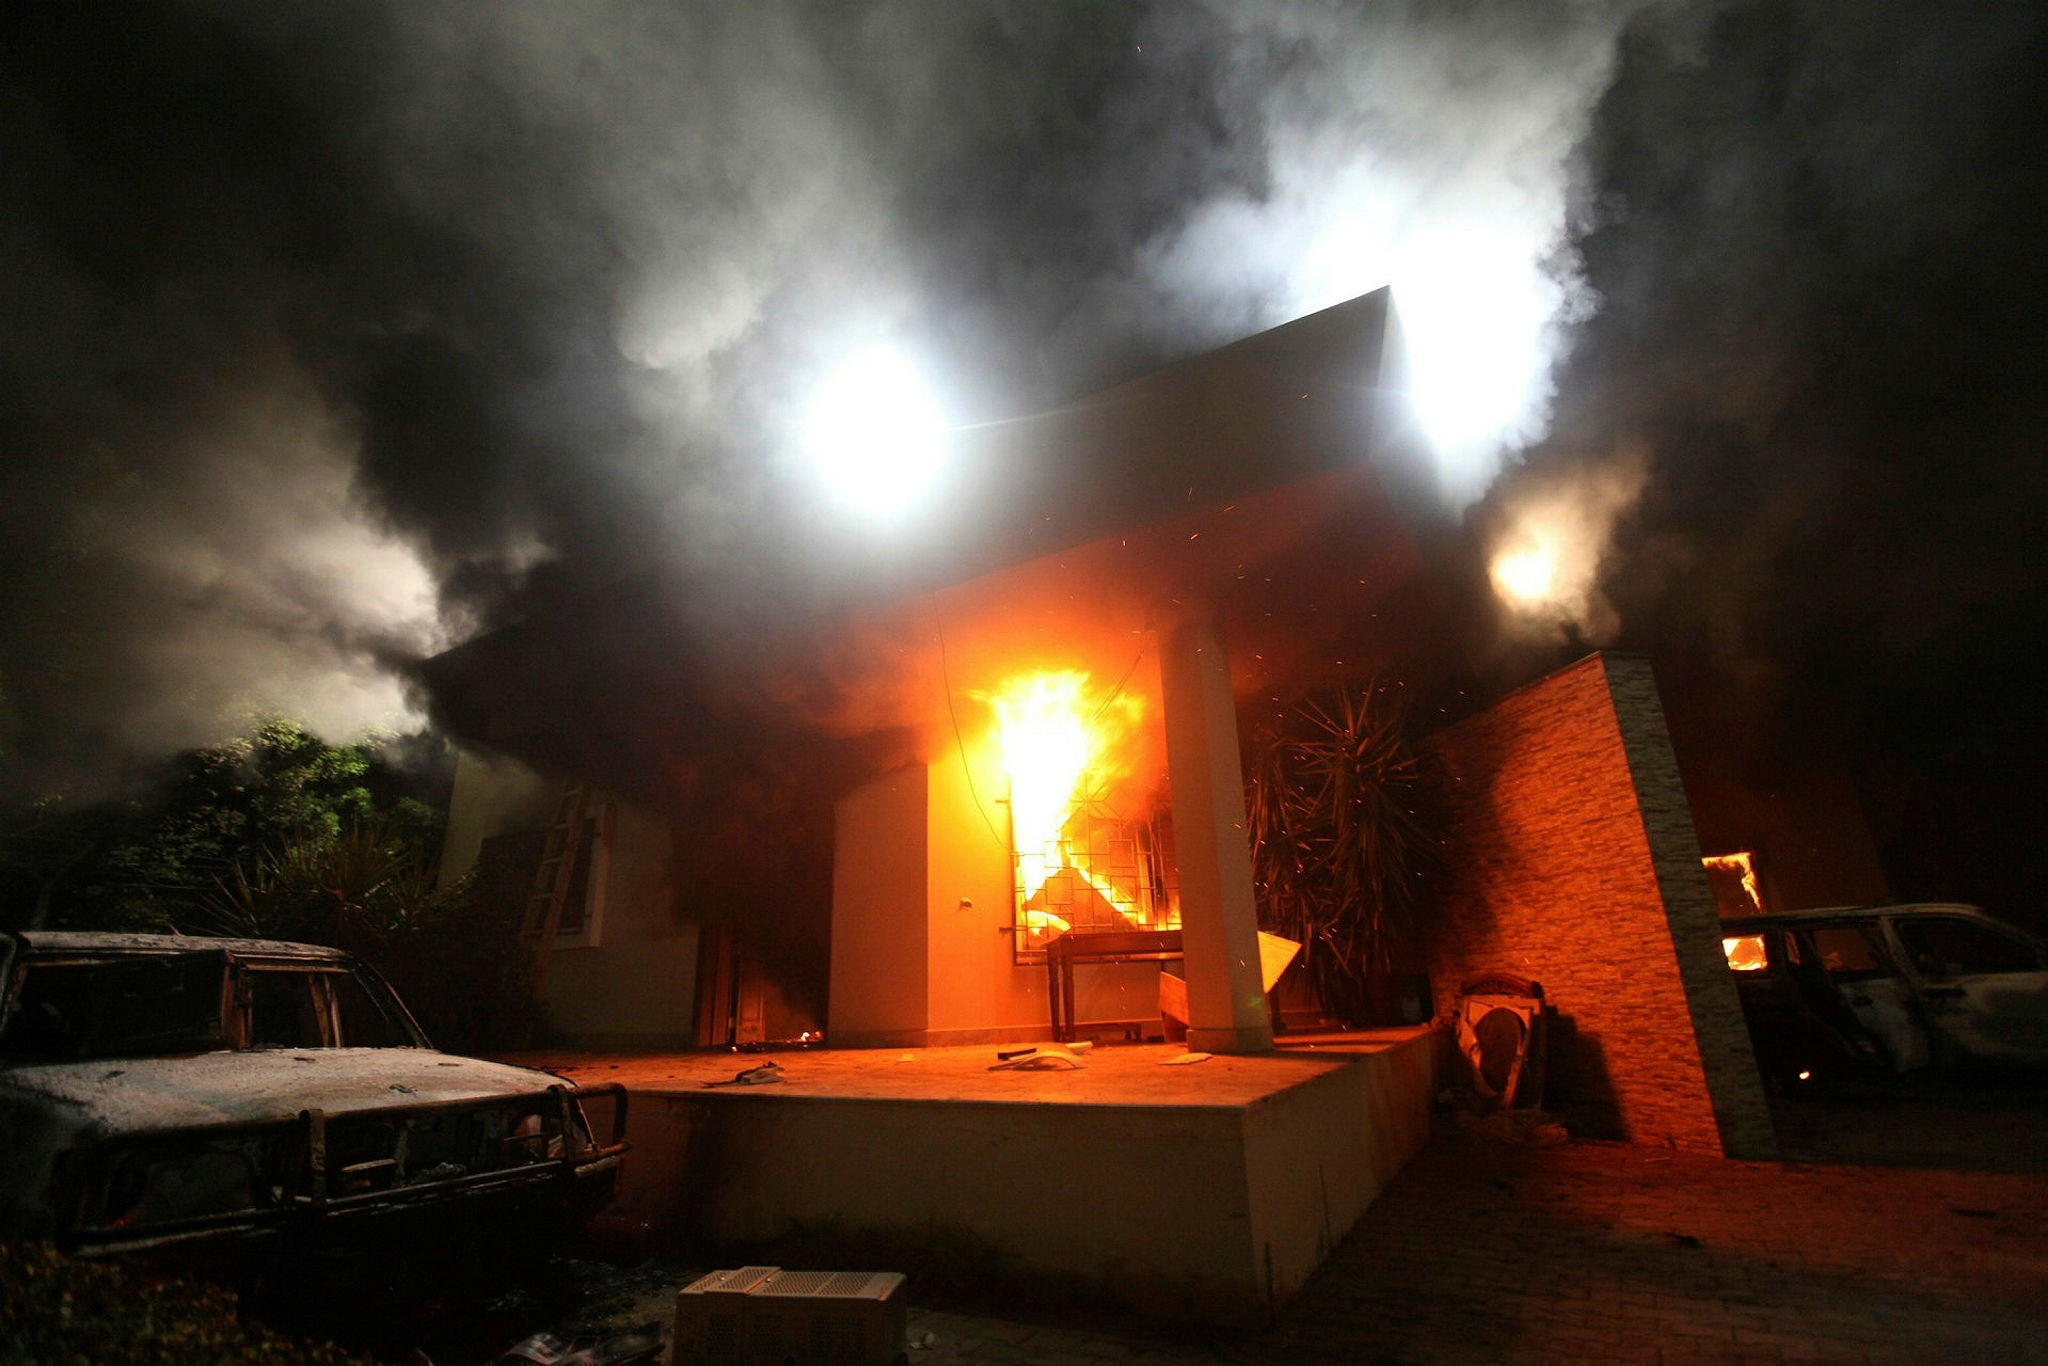 The U.S. Consulate in Benghazi is seen in flames during a protest by an armed group said to have been protesting a film being produced in the United States September 11, 2012. (Reuters Photo)